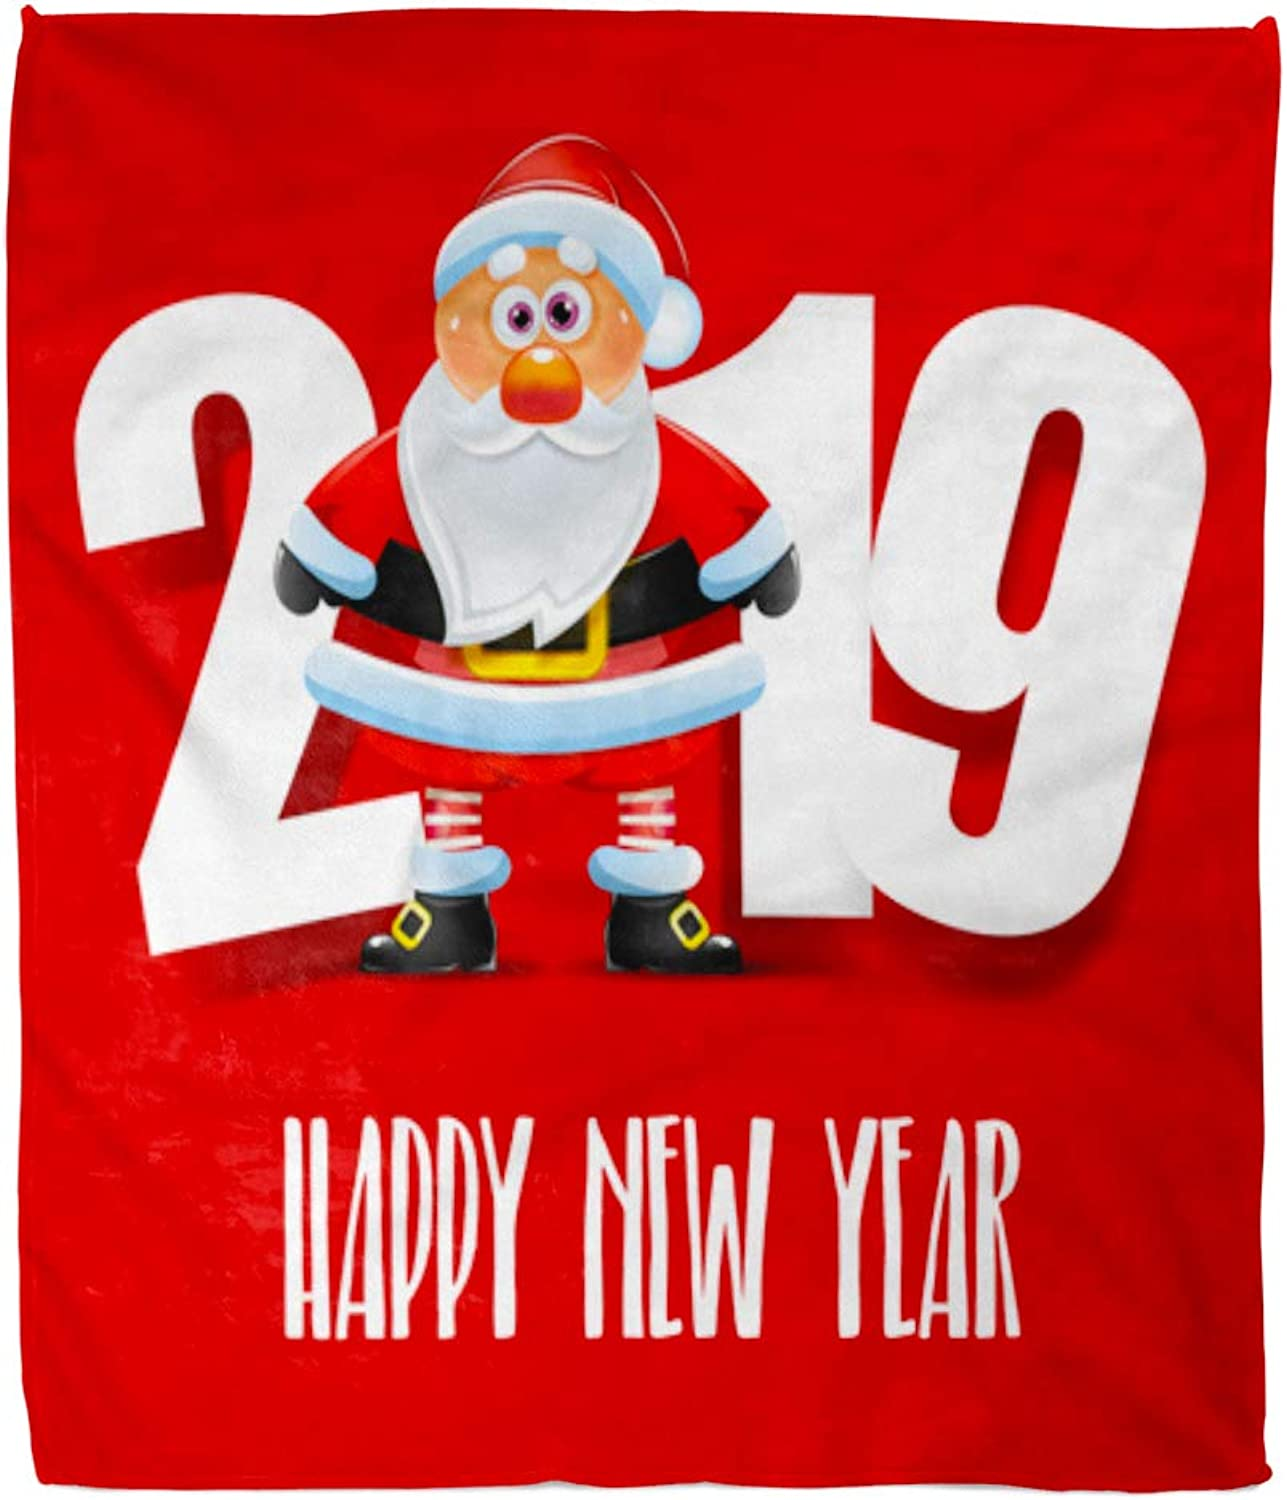 Emvency Decorative Throw Blanket 50 x 60 Inches Red Christmas Santa Claus Happy New Year Greeting Warm Flannel Soft Blanket for Couch Sofa Bed